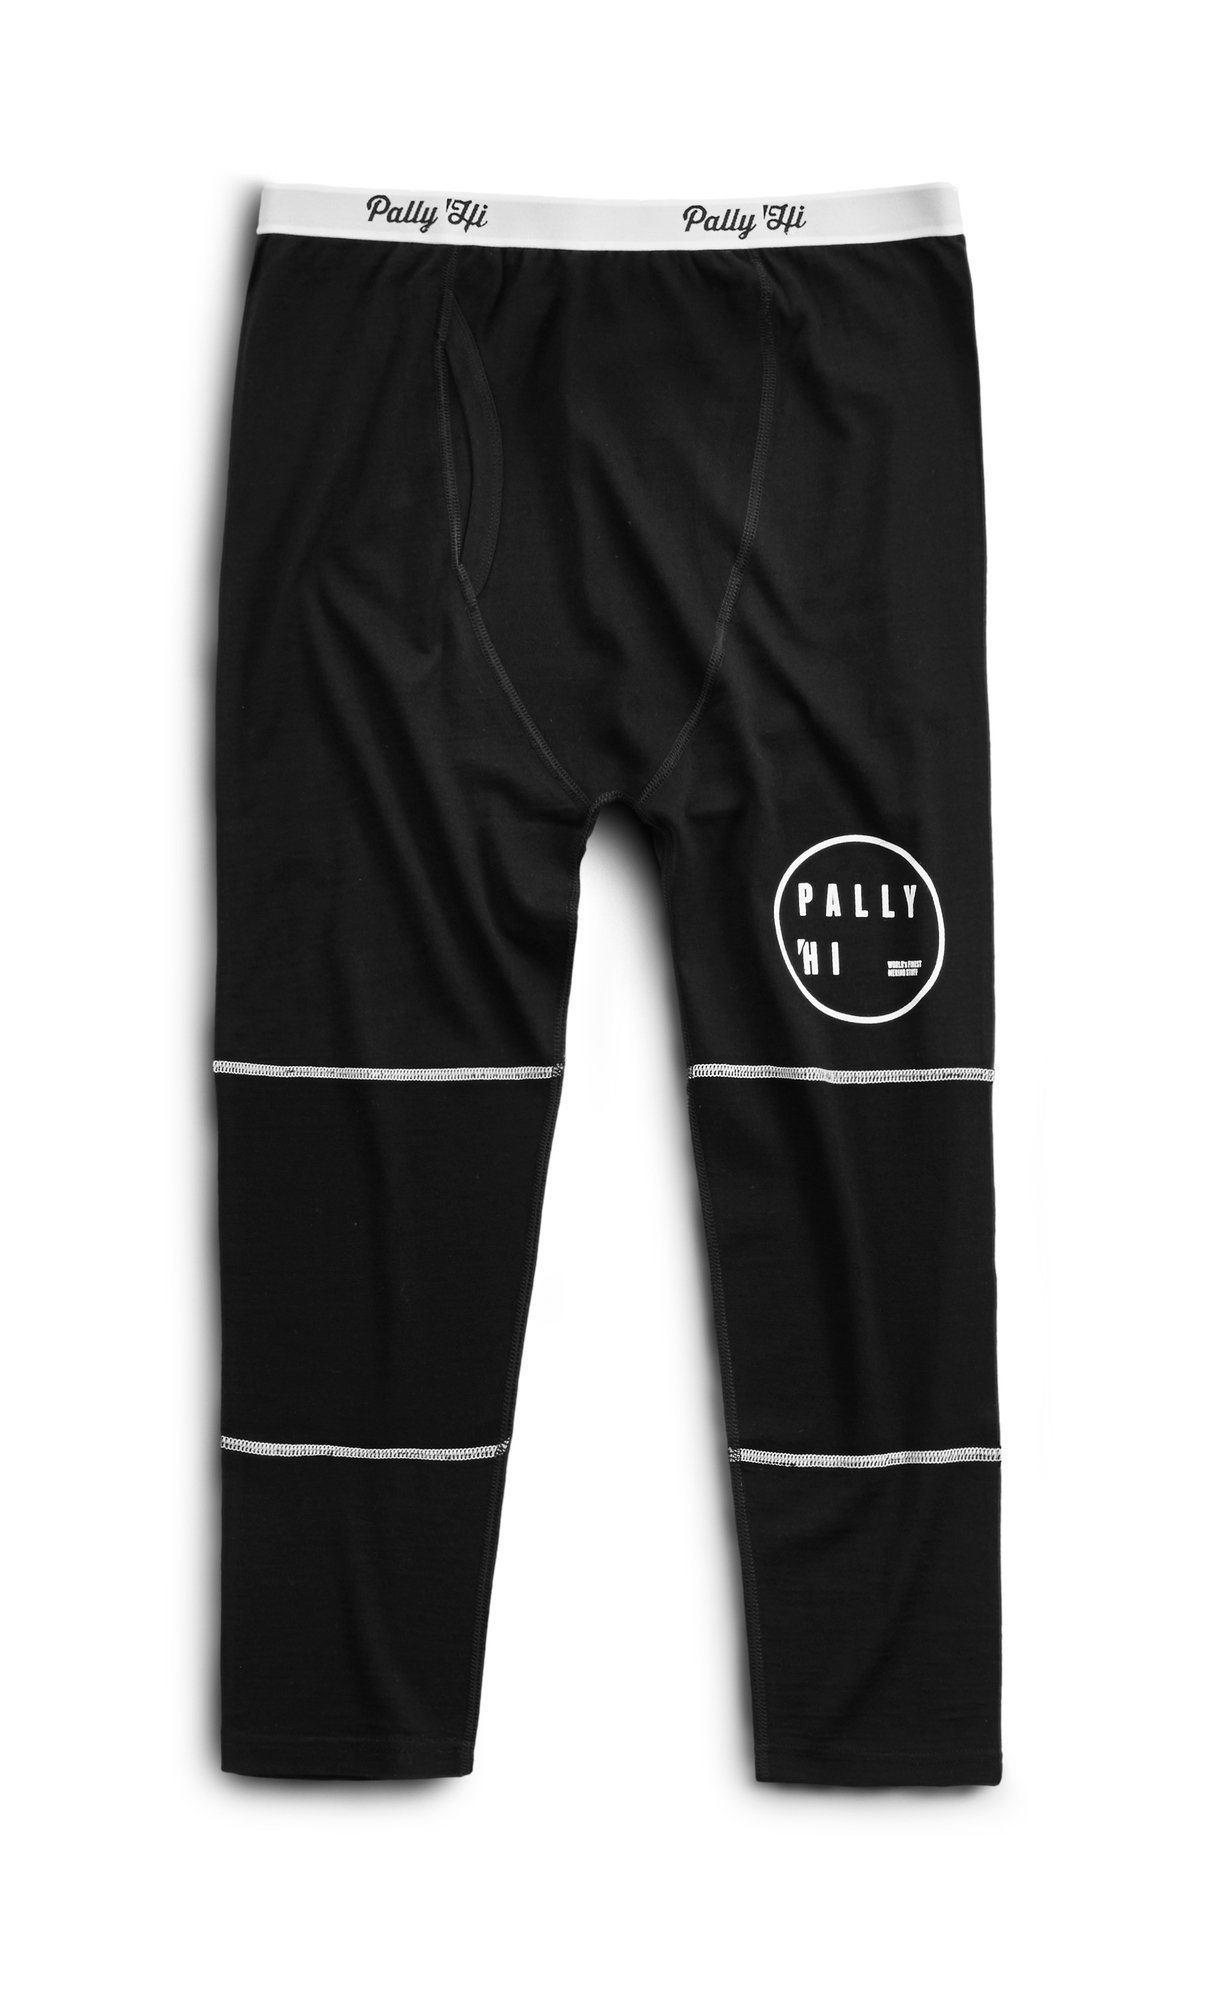 AK ¾ LONG JOHN PANTS